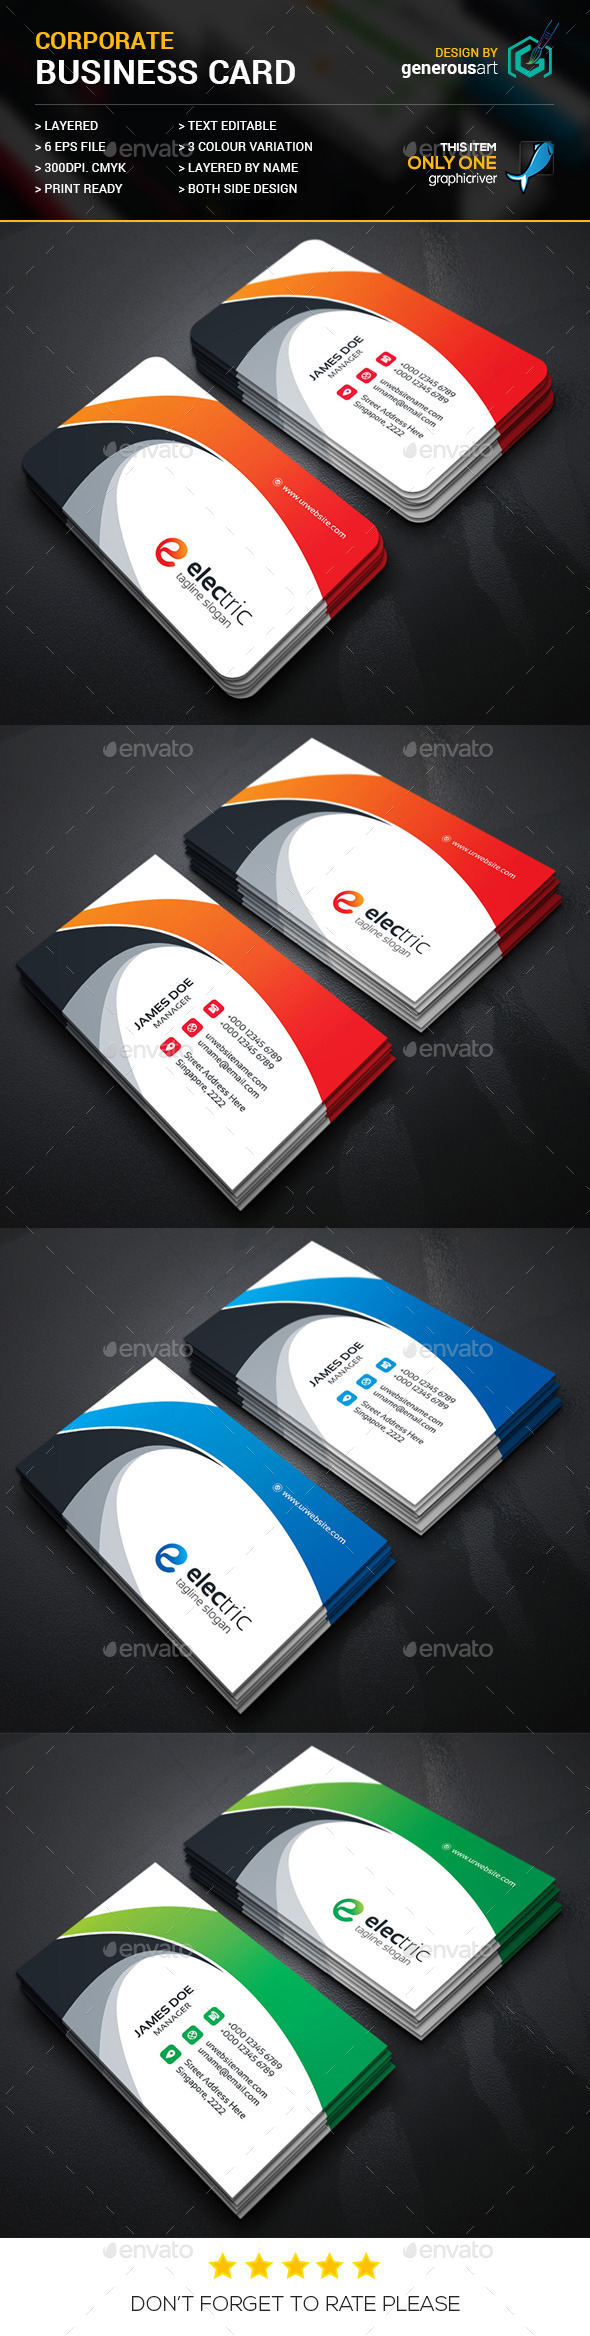 Electric Corporate Business Cards_3 - Corporate Business Cards